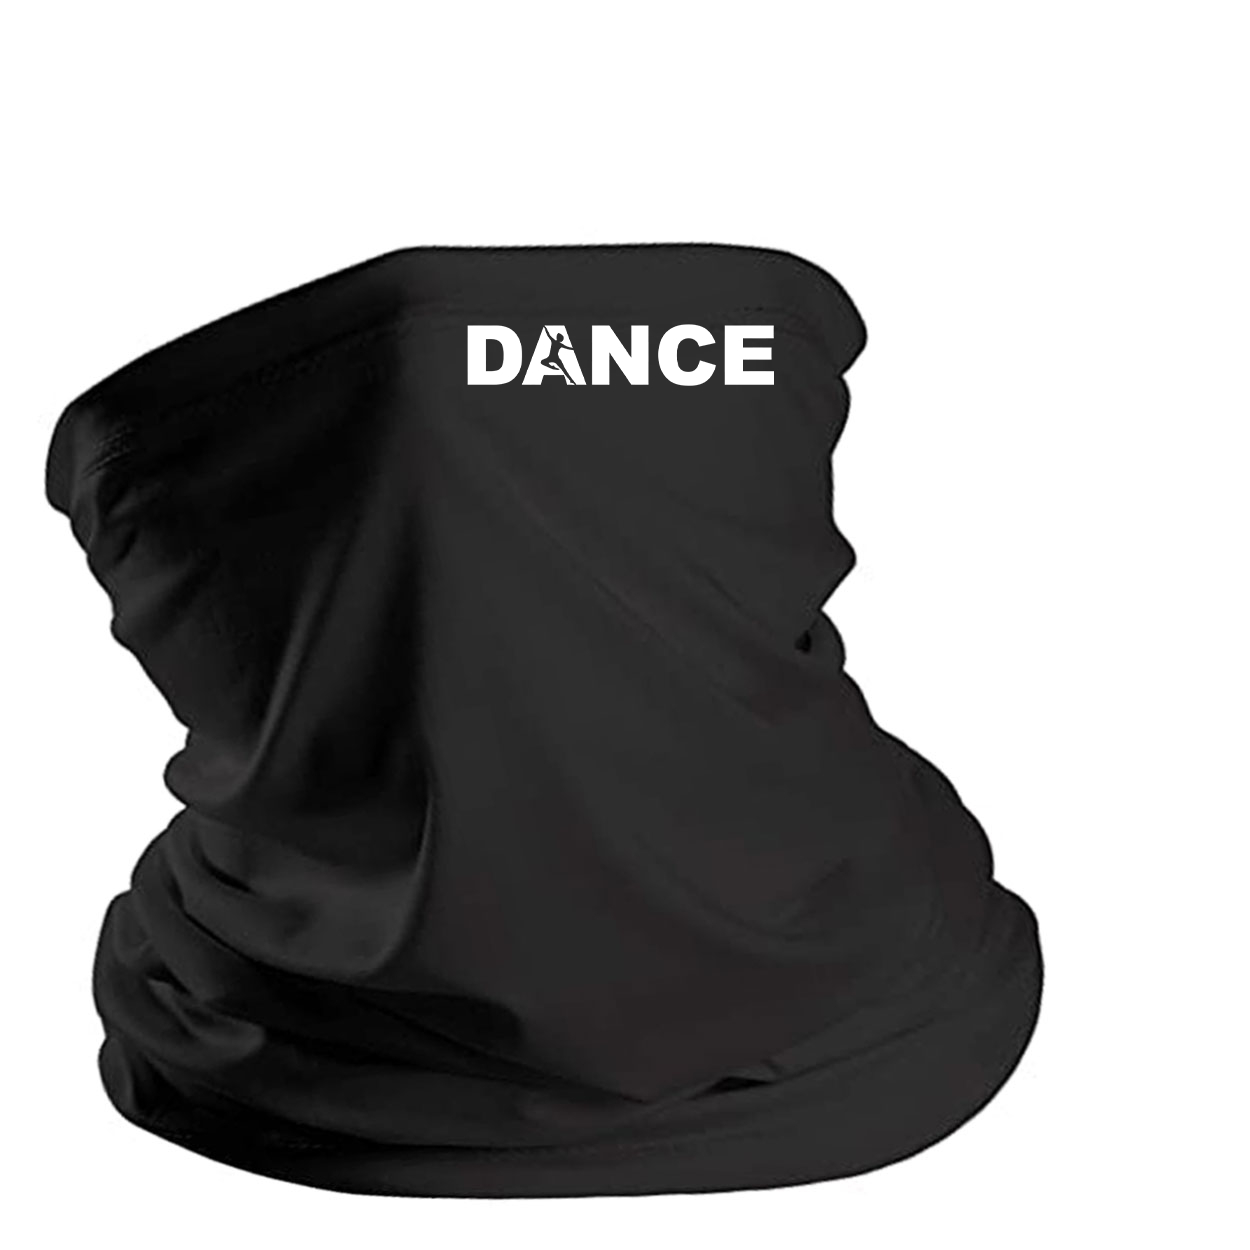 Dance Silhouette Logo Night Out Lightweight Neck Gaiter Face Mask Black (White Logo)